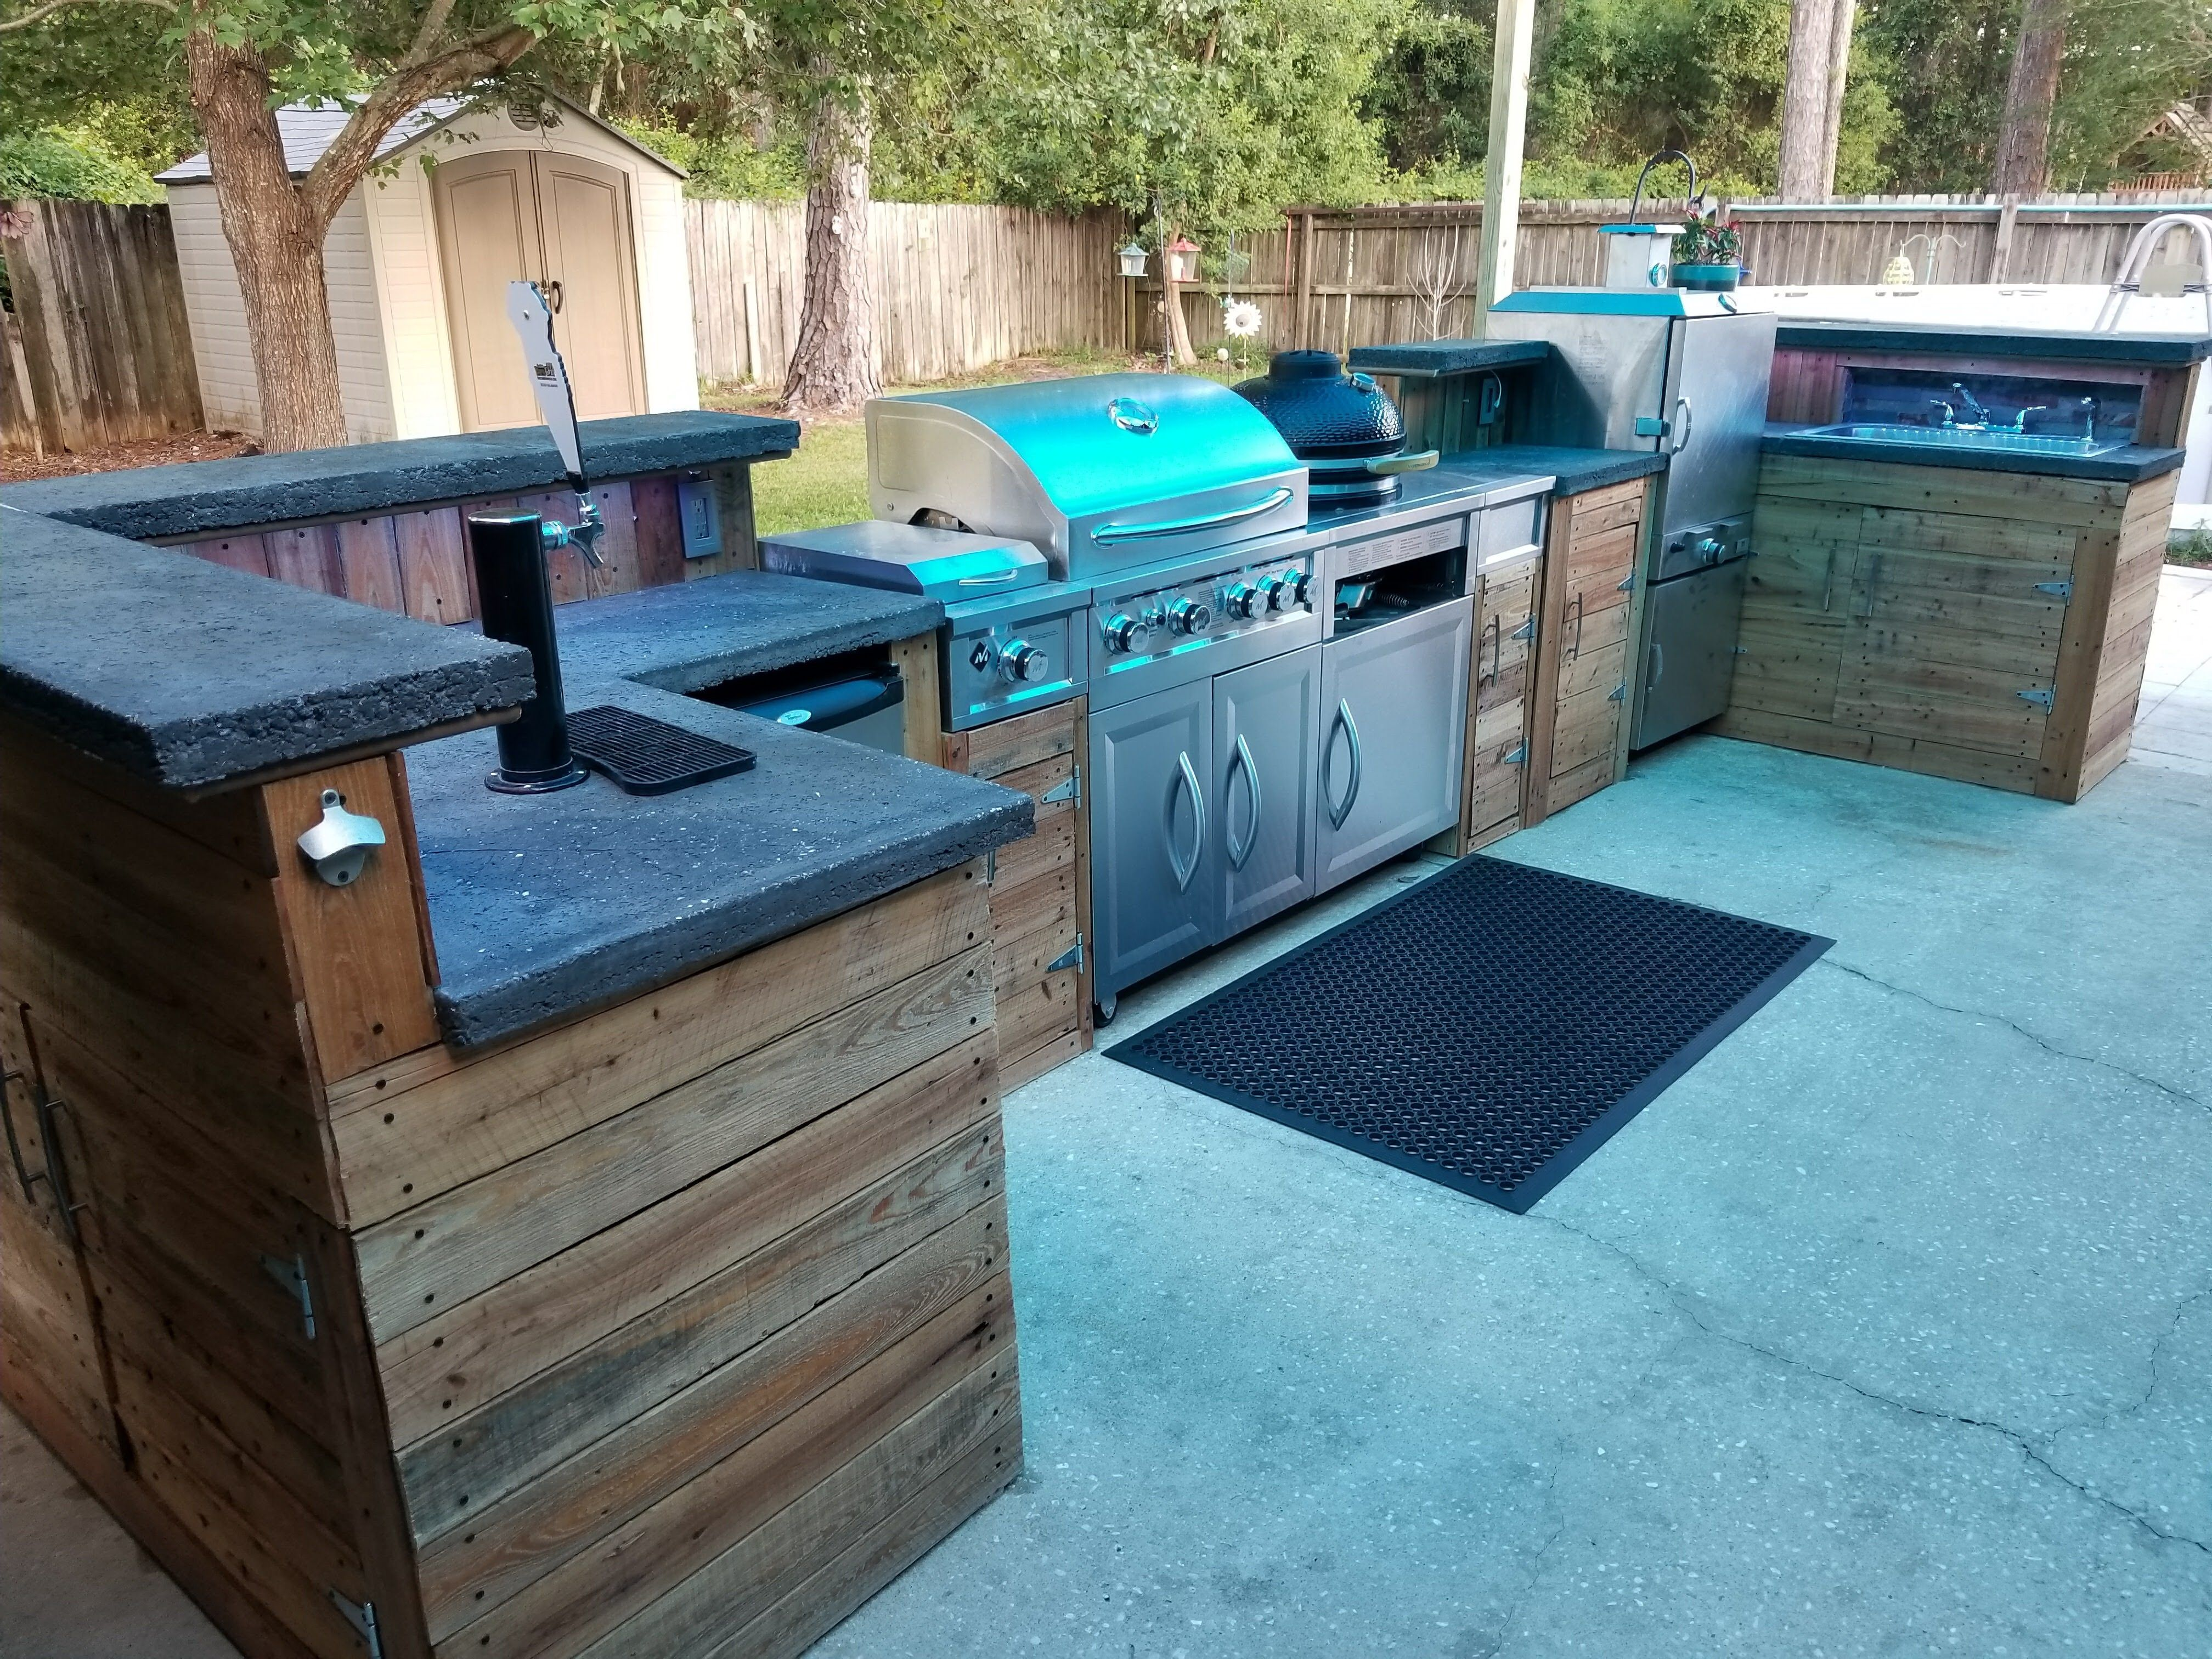 Outdoor kitchen build with lots of great ideas #modernpoolbig ...